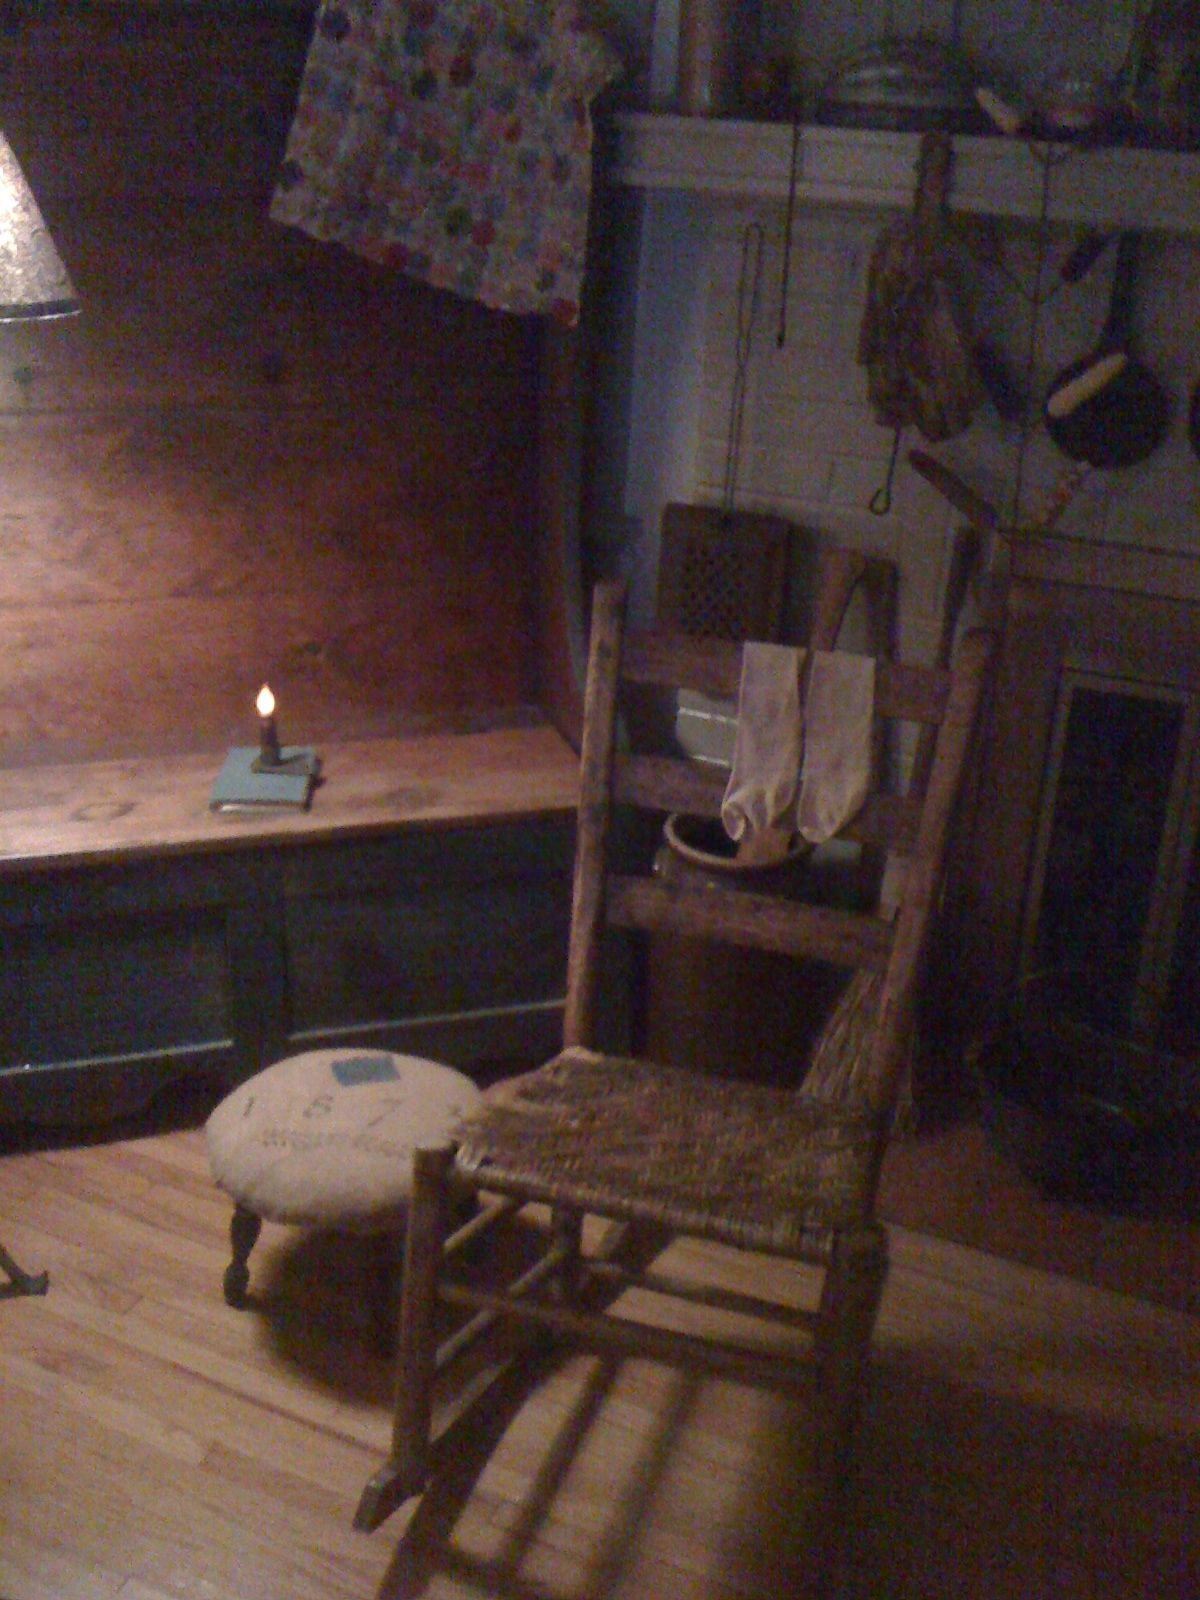 Old rocking chair... where I have rocked away many tears and fears... my own